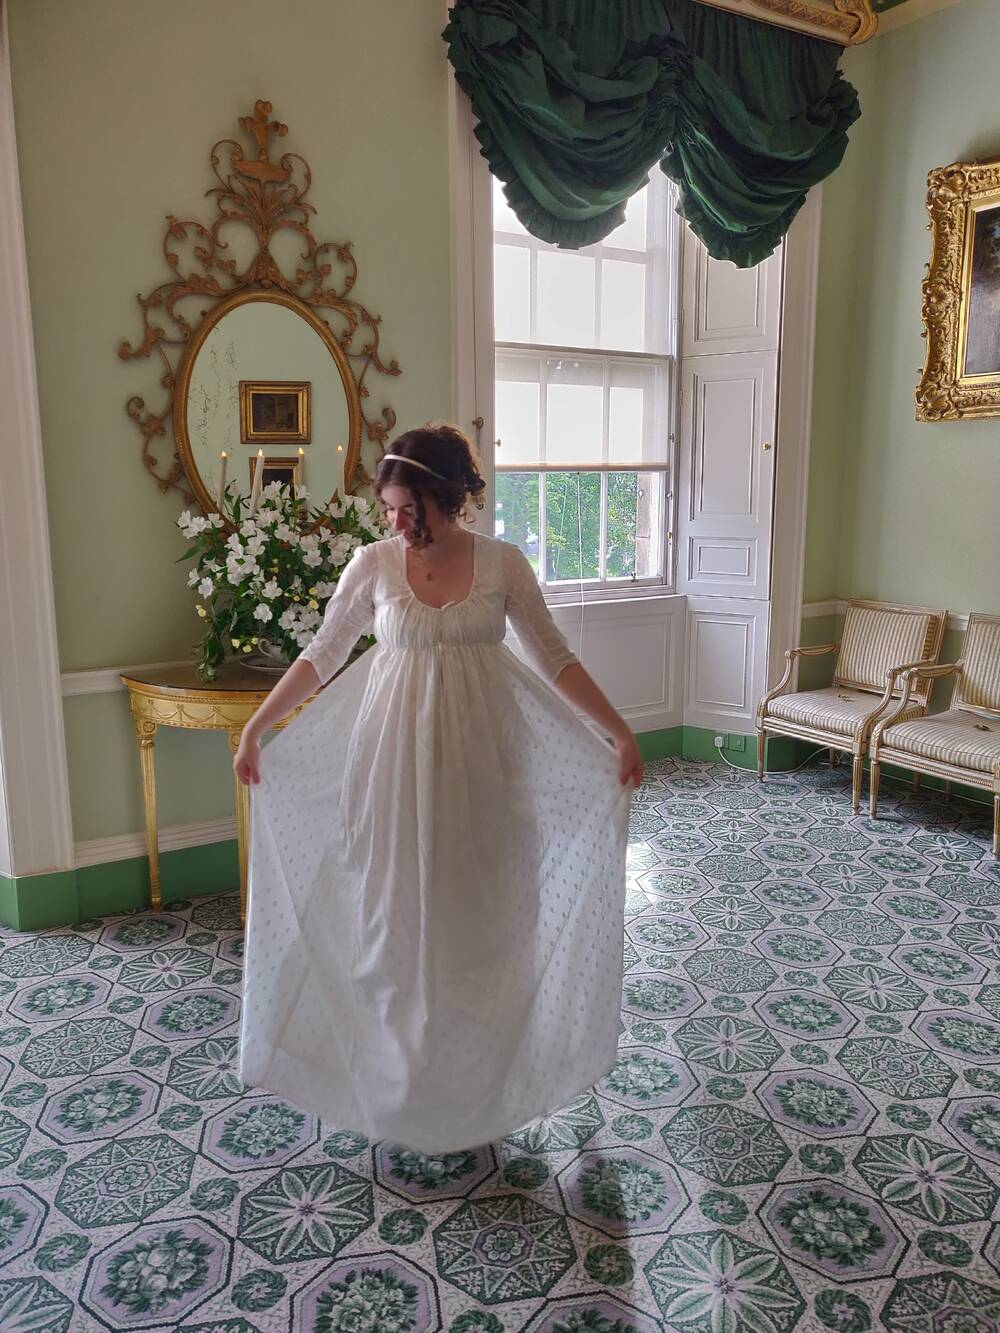 A lady models a white 1800s-style gown in the drawing room of the Georgian House. She holds the skirt out to each side.